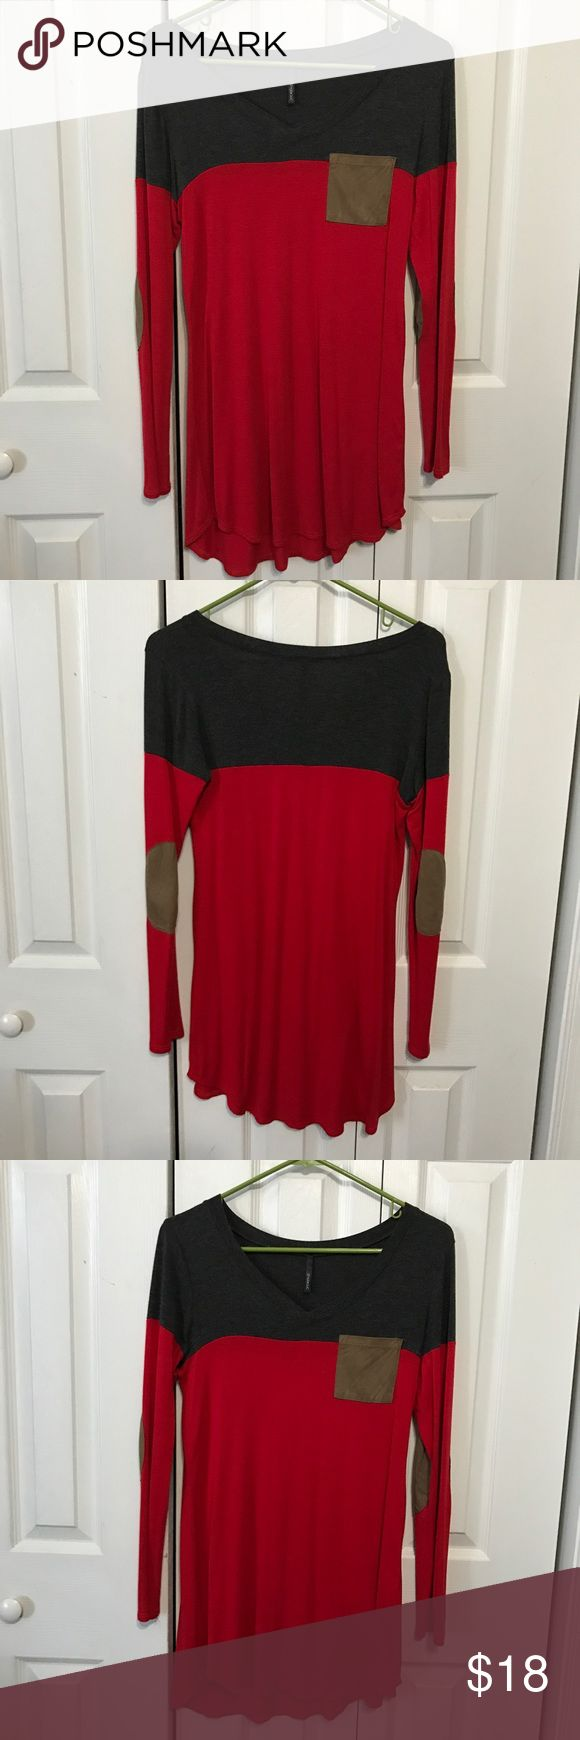 Red and Gray Tunic Red and Gray colorblock tunic with leather elbow patches Mint Julep Boutique Tops Tunics